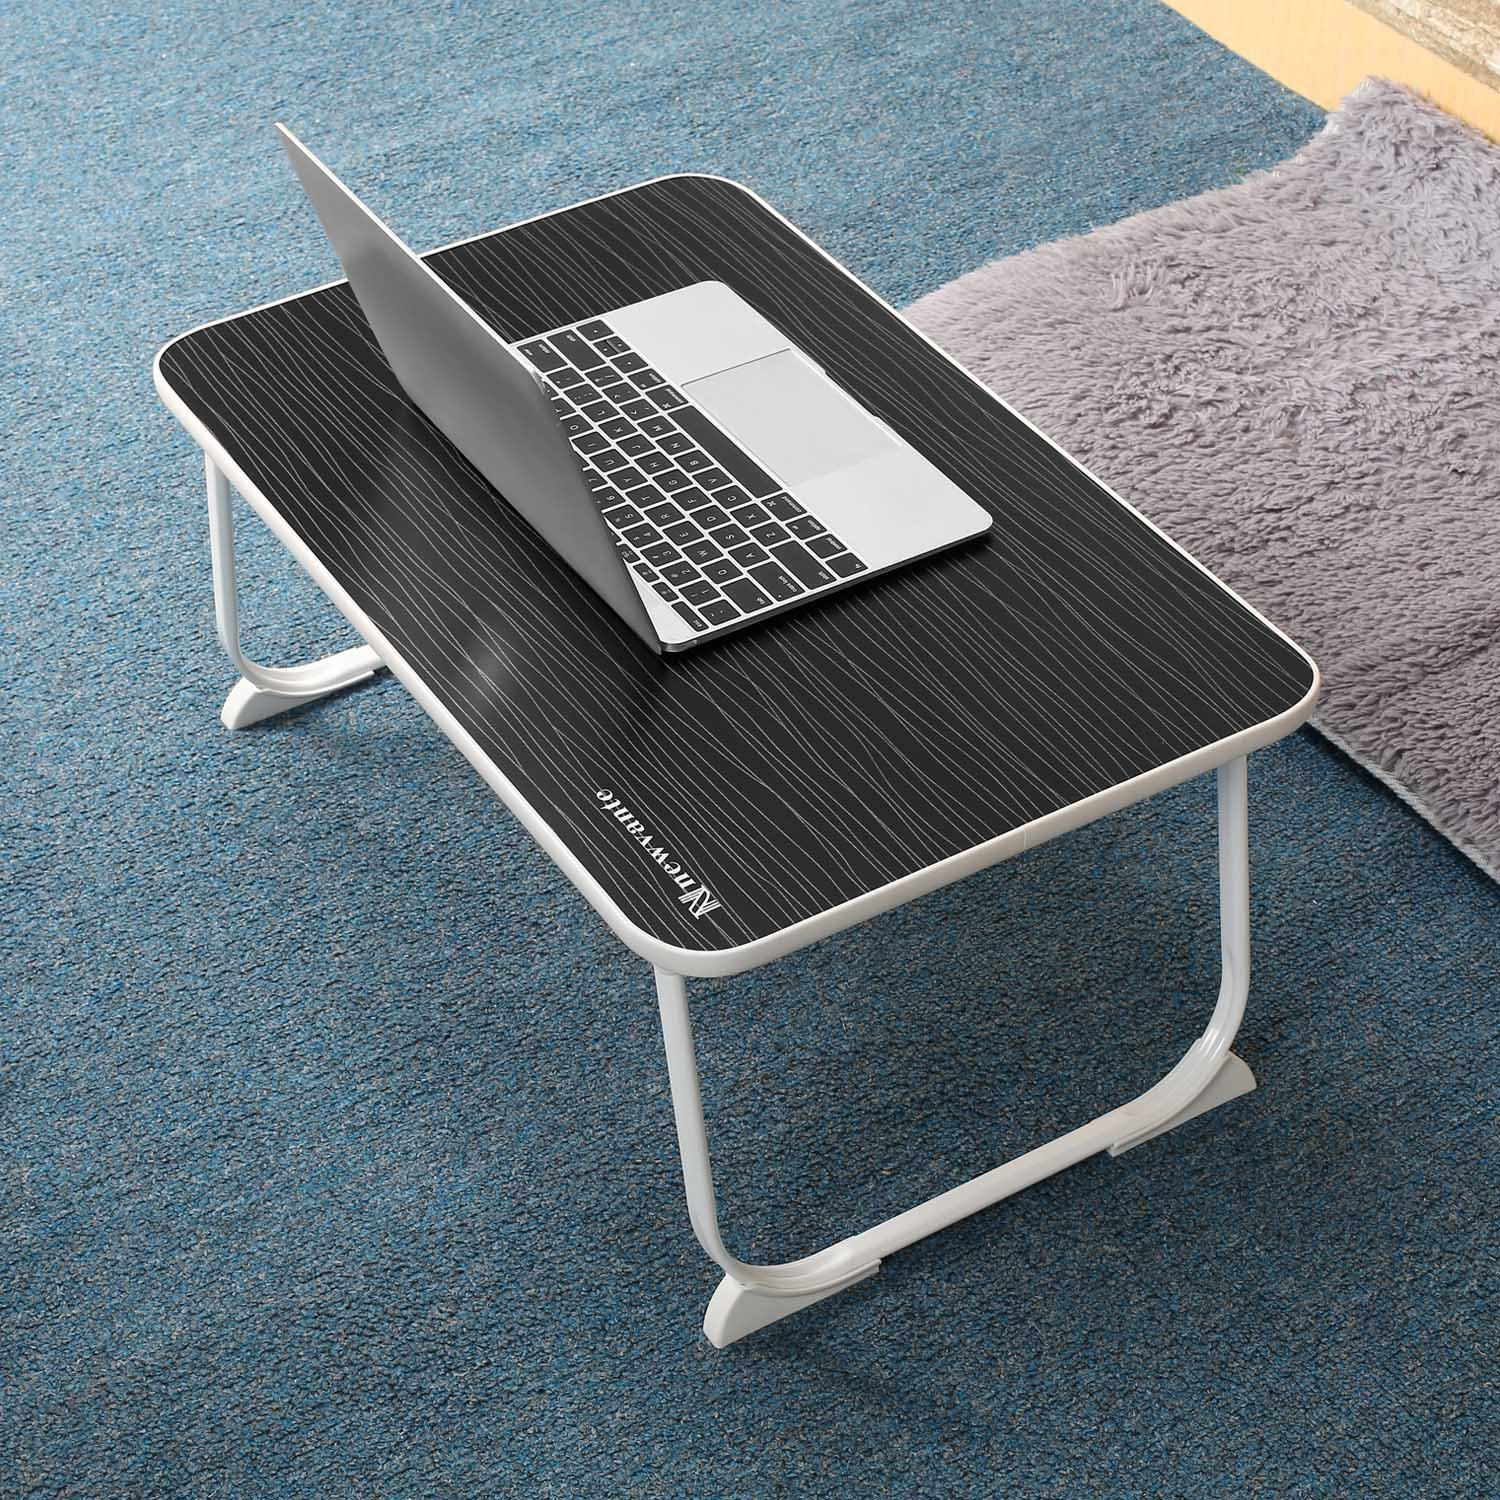 Large Lap Desk Bed Tray NNEWVANTE Laptop Table Desk Foldable Portable Standing Breakfast Reading Tray Holder for Couch Floor Students Kids Young Color(Black) by NNEWVANTE (Image #6)